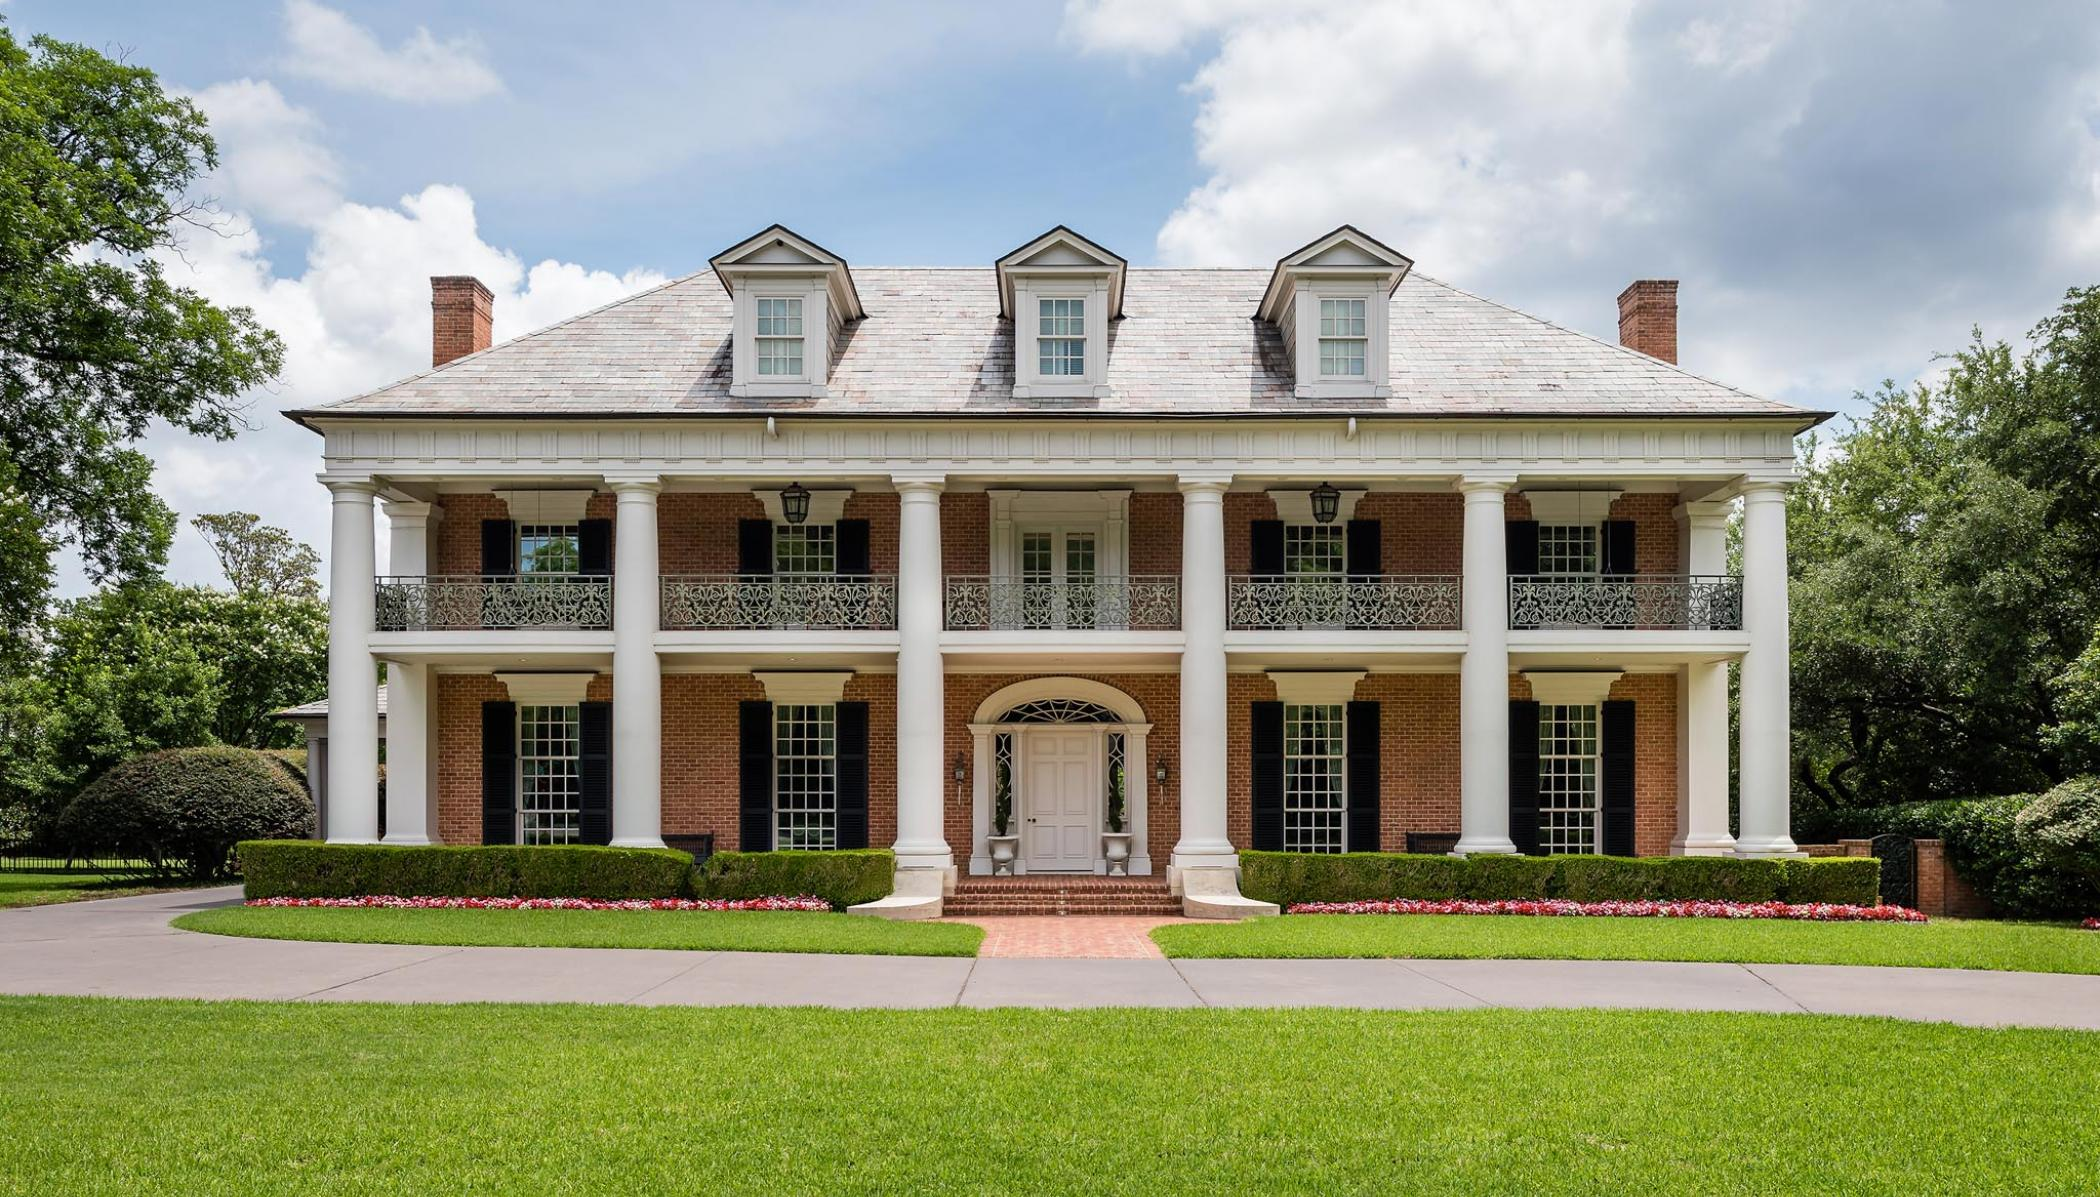 This Turtle Creek home by architect Richard Davis has both a double portico and a balustrade. The columns here follow the Doric order, meaning they are simple and streamlined in design. (This photo is copyright of  Richard Drummond Davis Architects . Chambers Interiors & Associates was granted permission to feature this image).